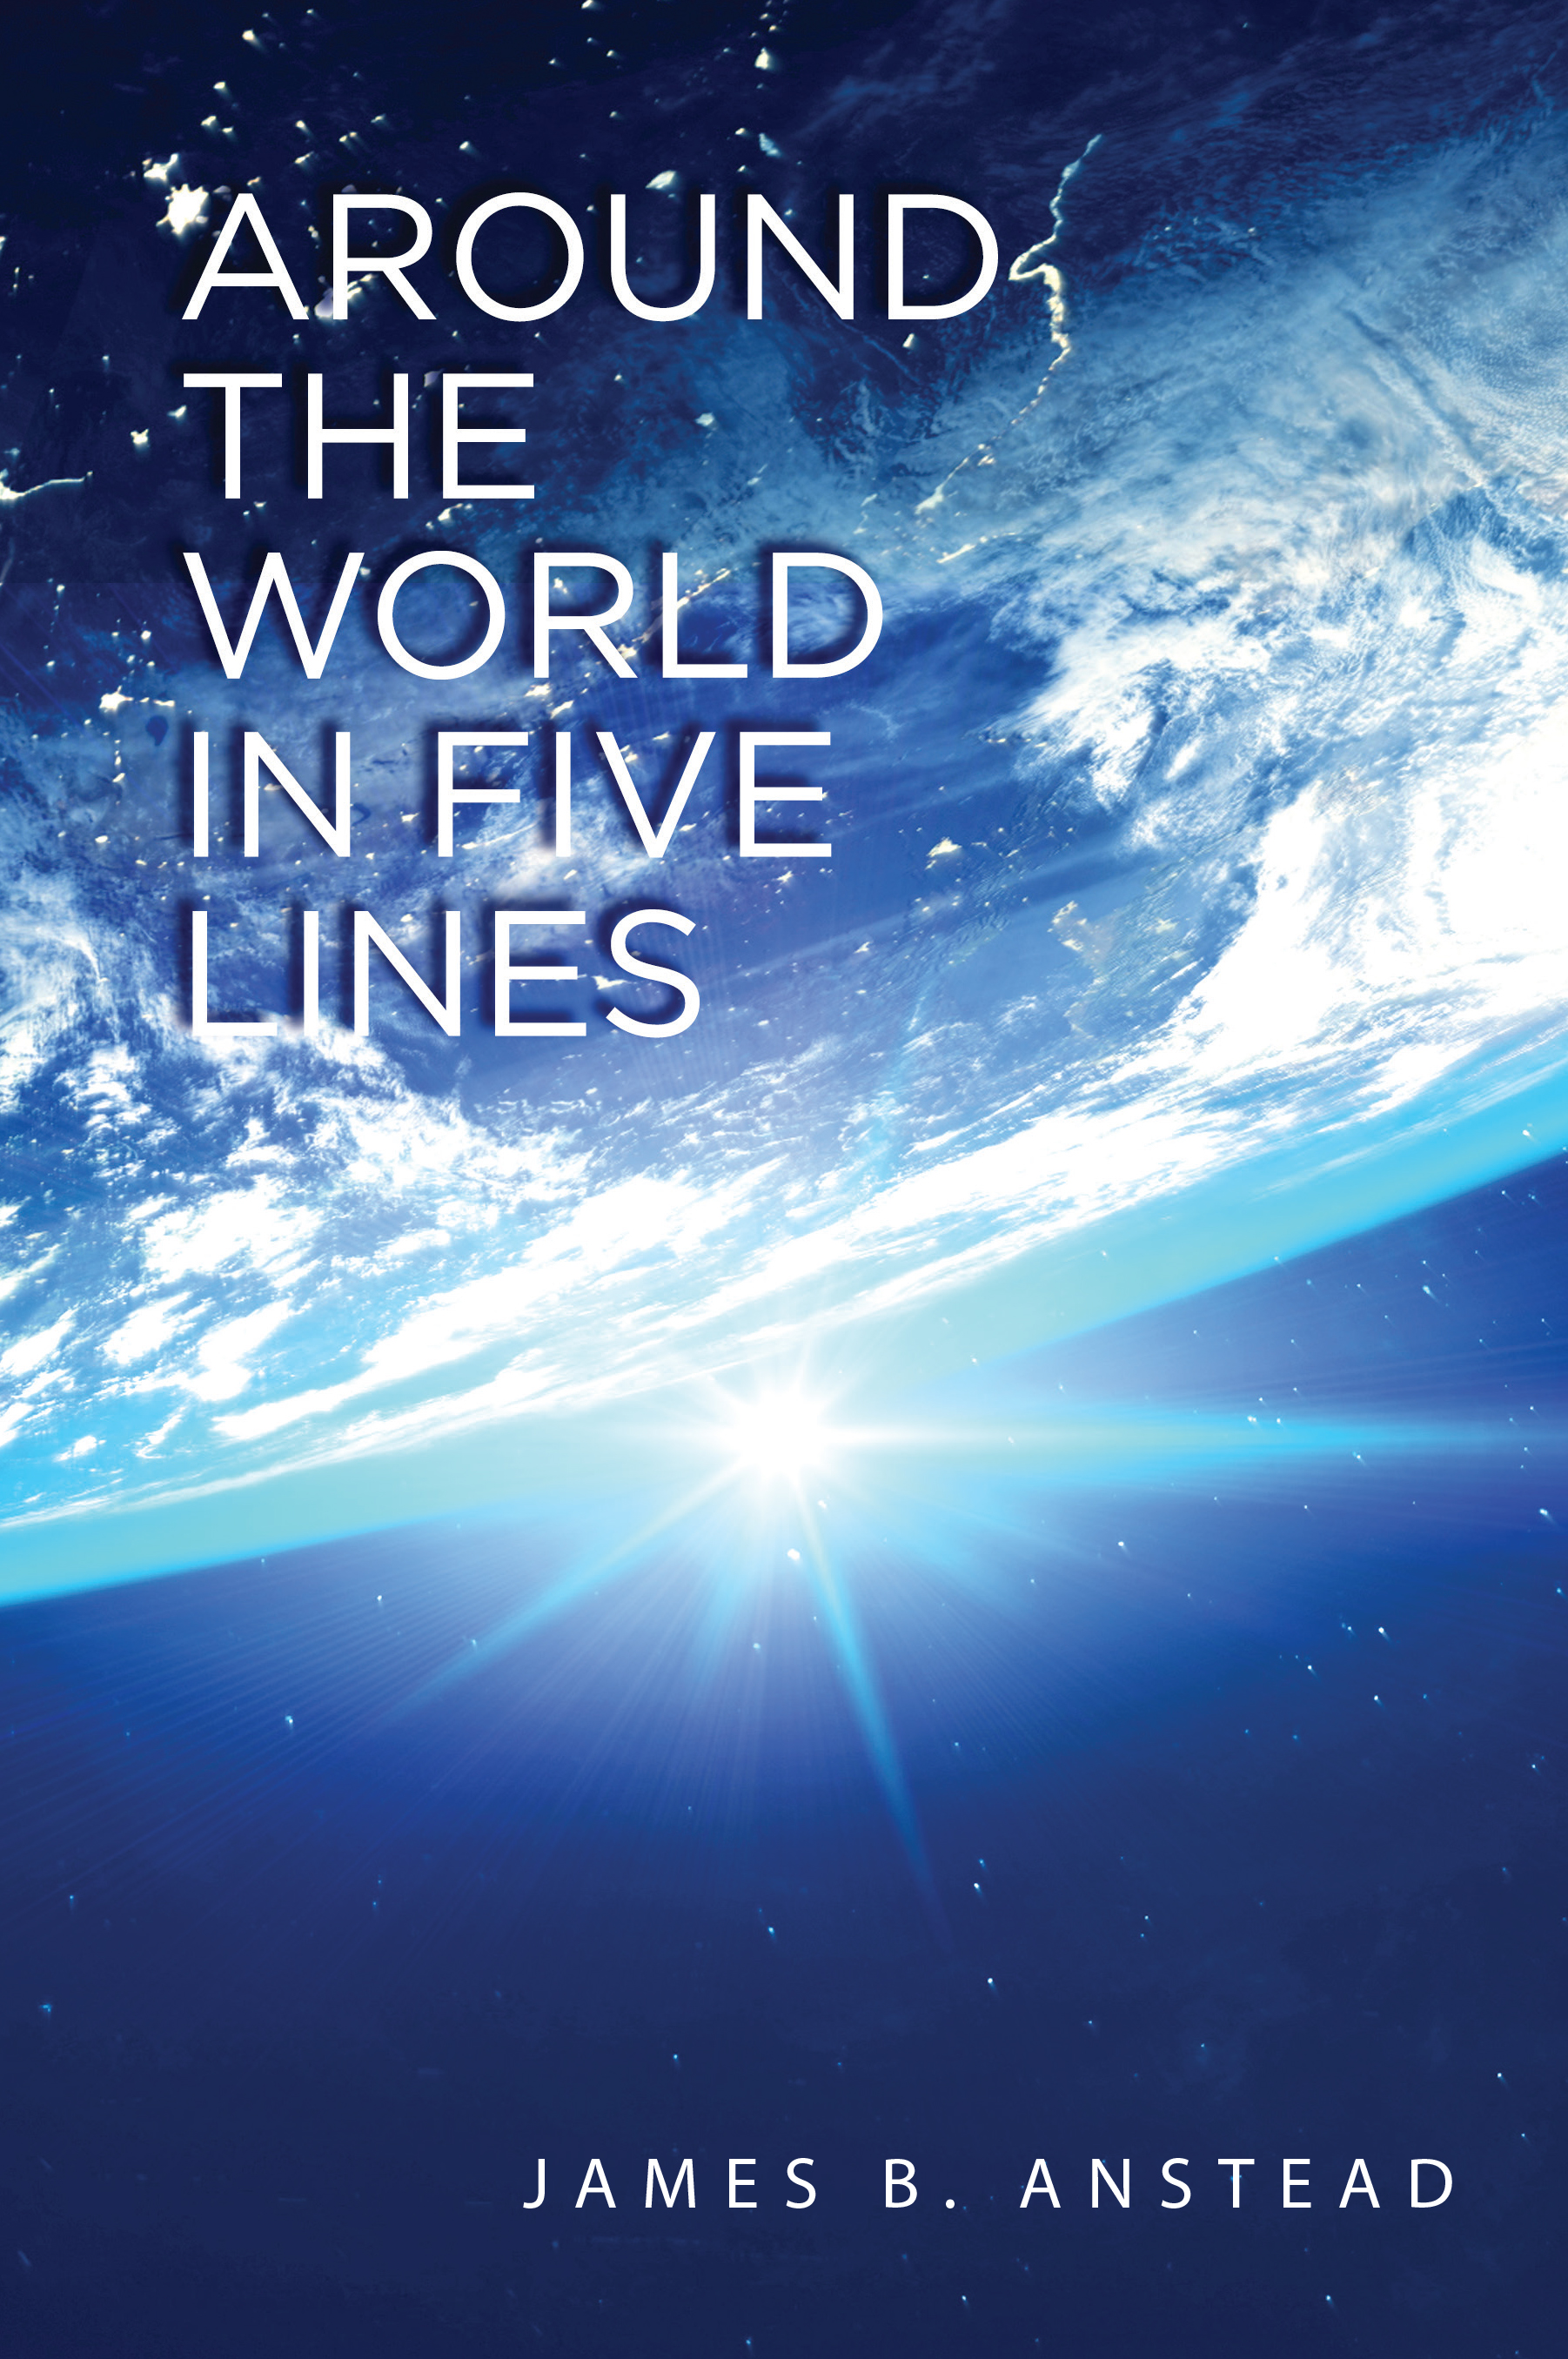 The US Book Reviews Commends Author James B. Anstead for his book Around the World in Five Lines